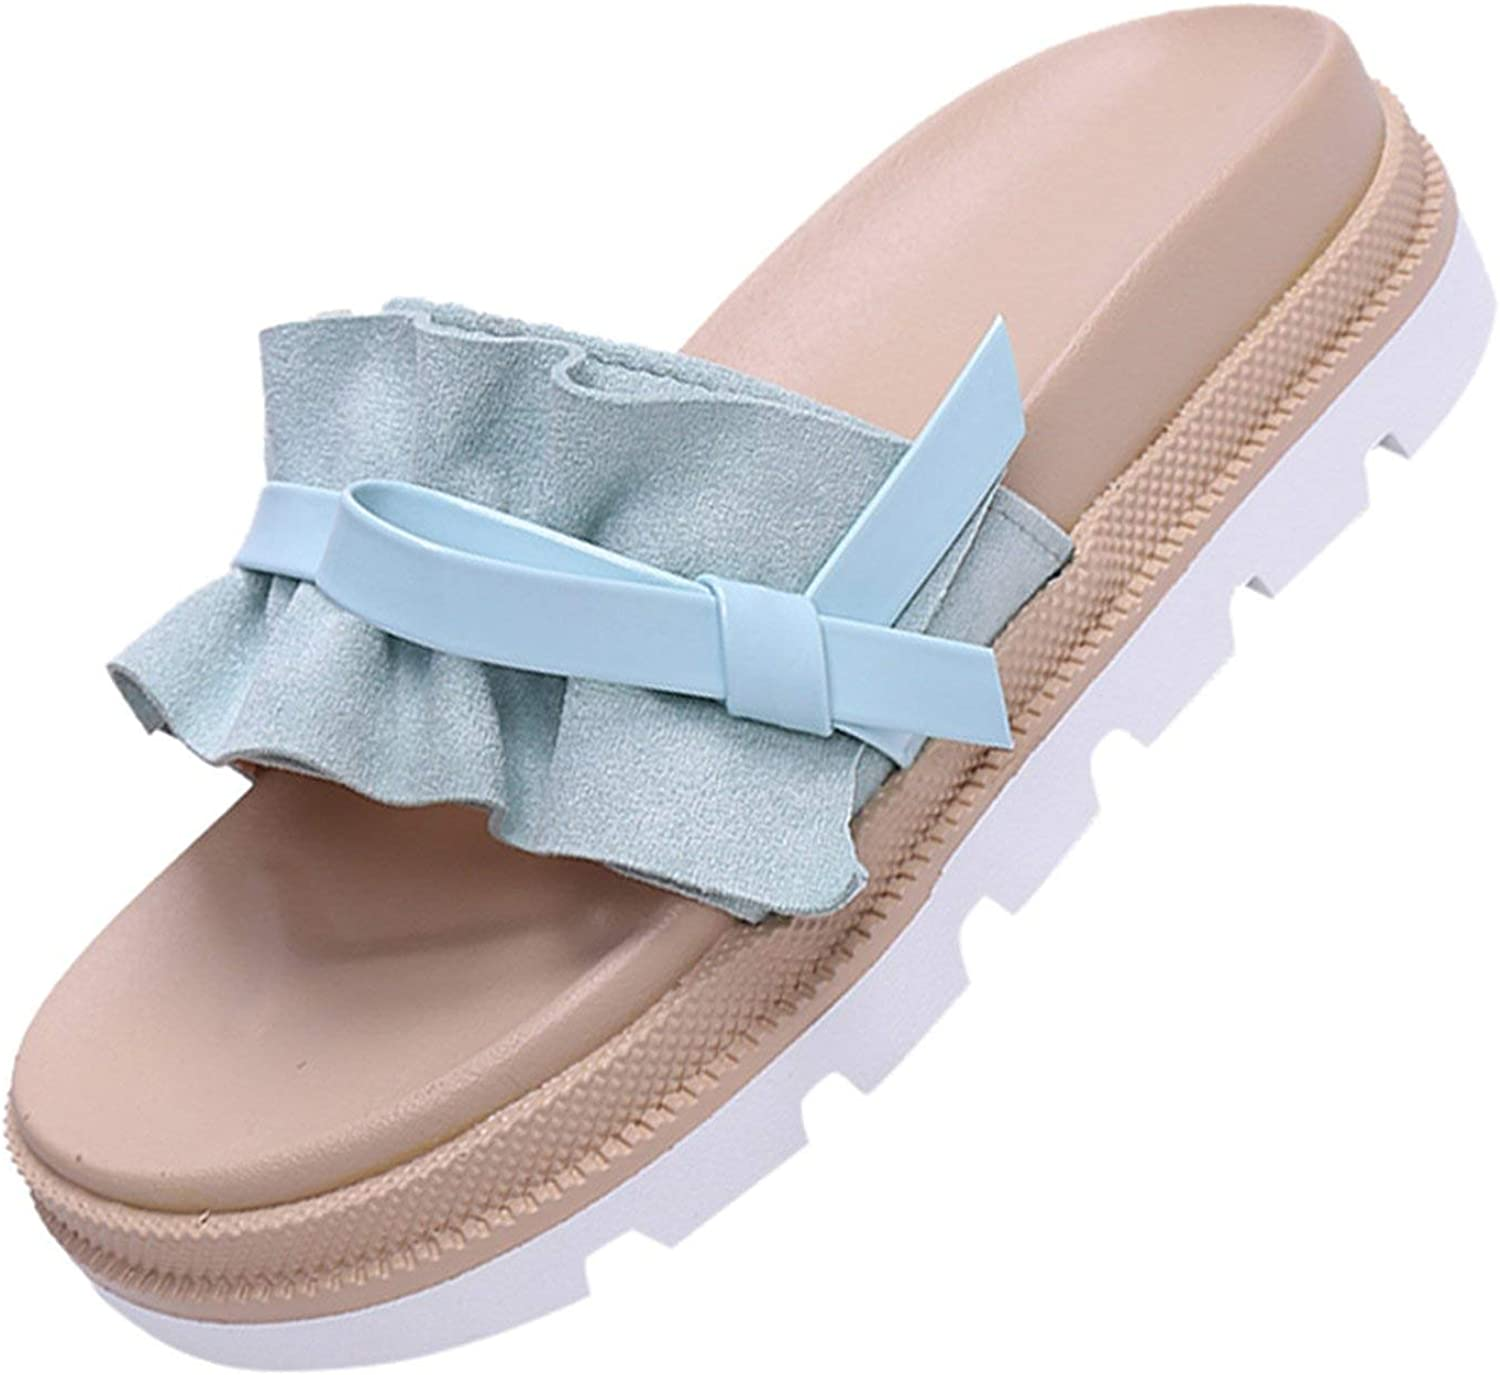 Mr Z Waroom Slippers Casual shoes Female Summer Beach Sponge Cake Thick Sandals and Slippers flip Flops Women Slippers